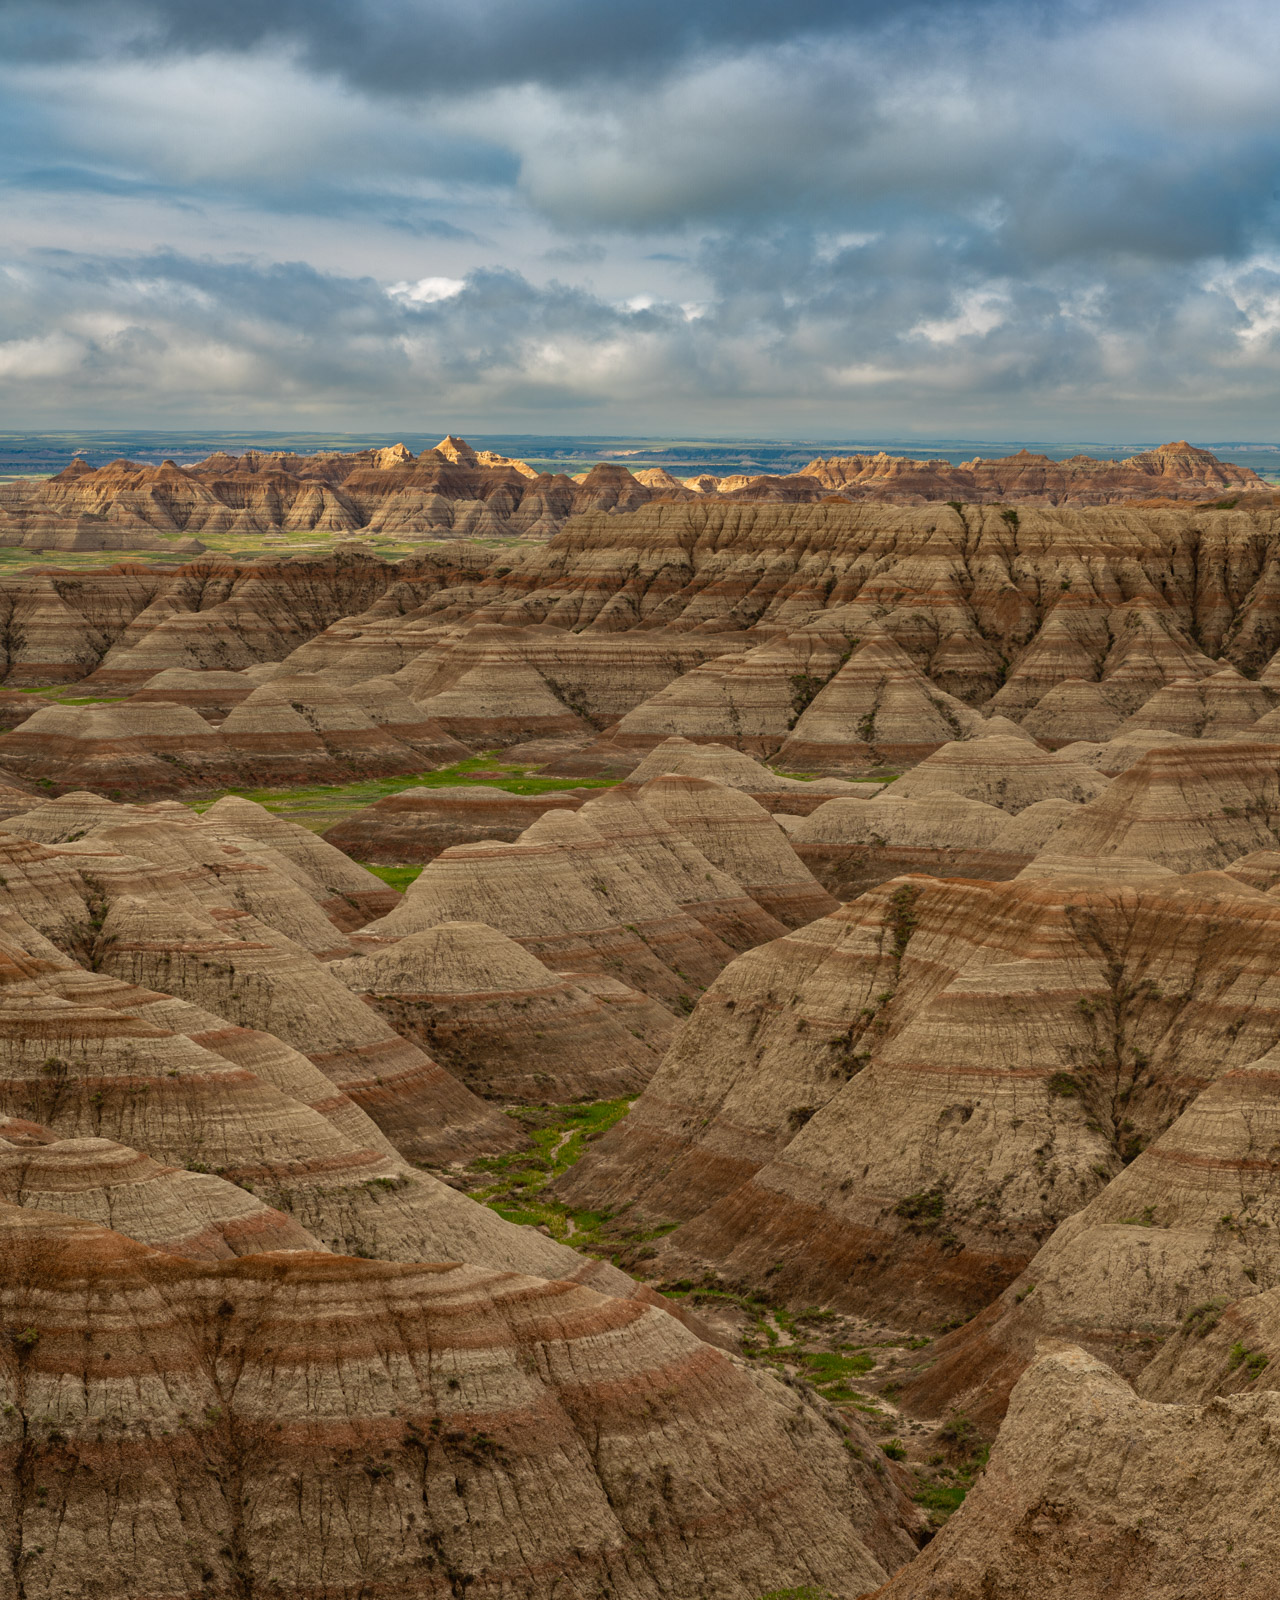 Clearing storm after sunrise across the Badlands of South Dakota.